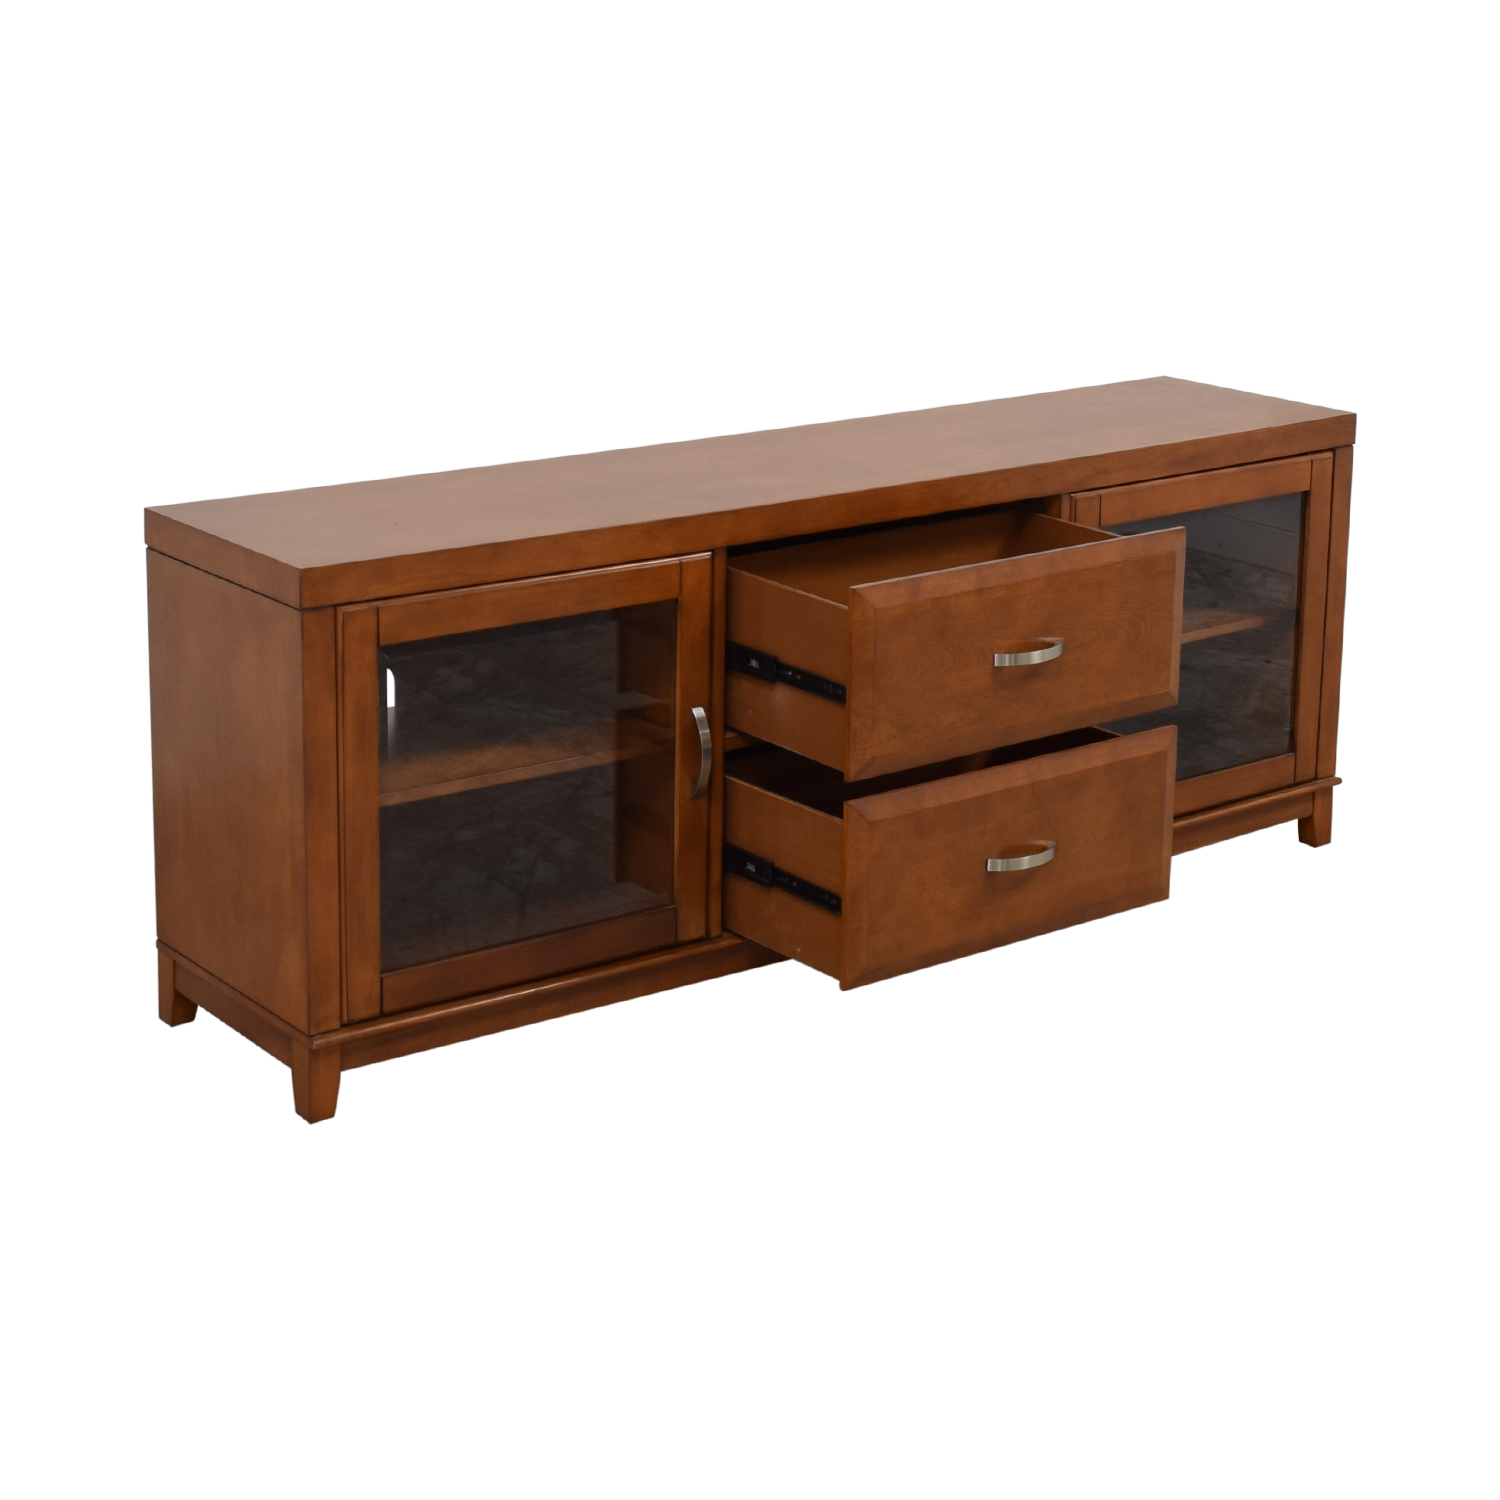 Raymour & Flanigan Wood and Glass Media Console / Media Units